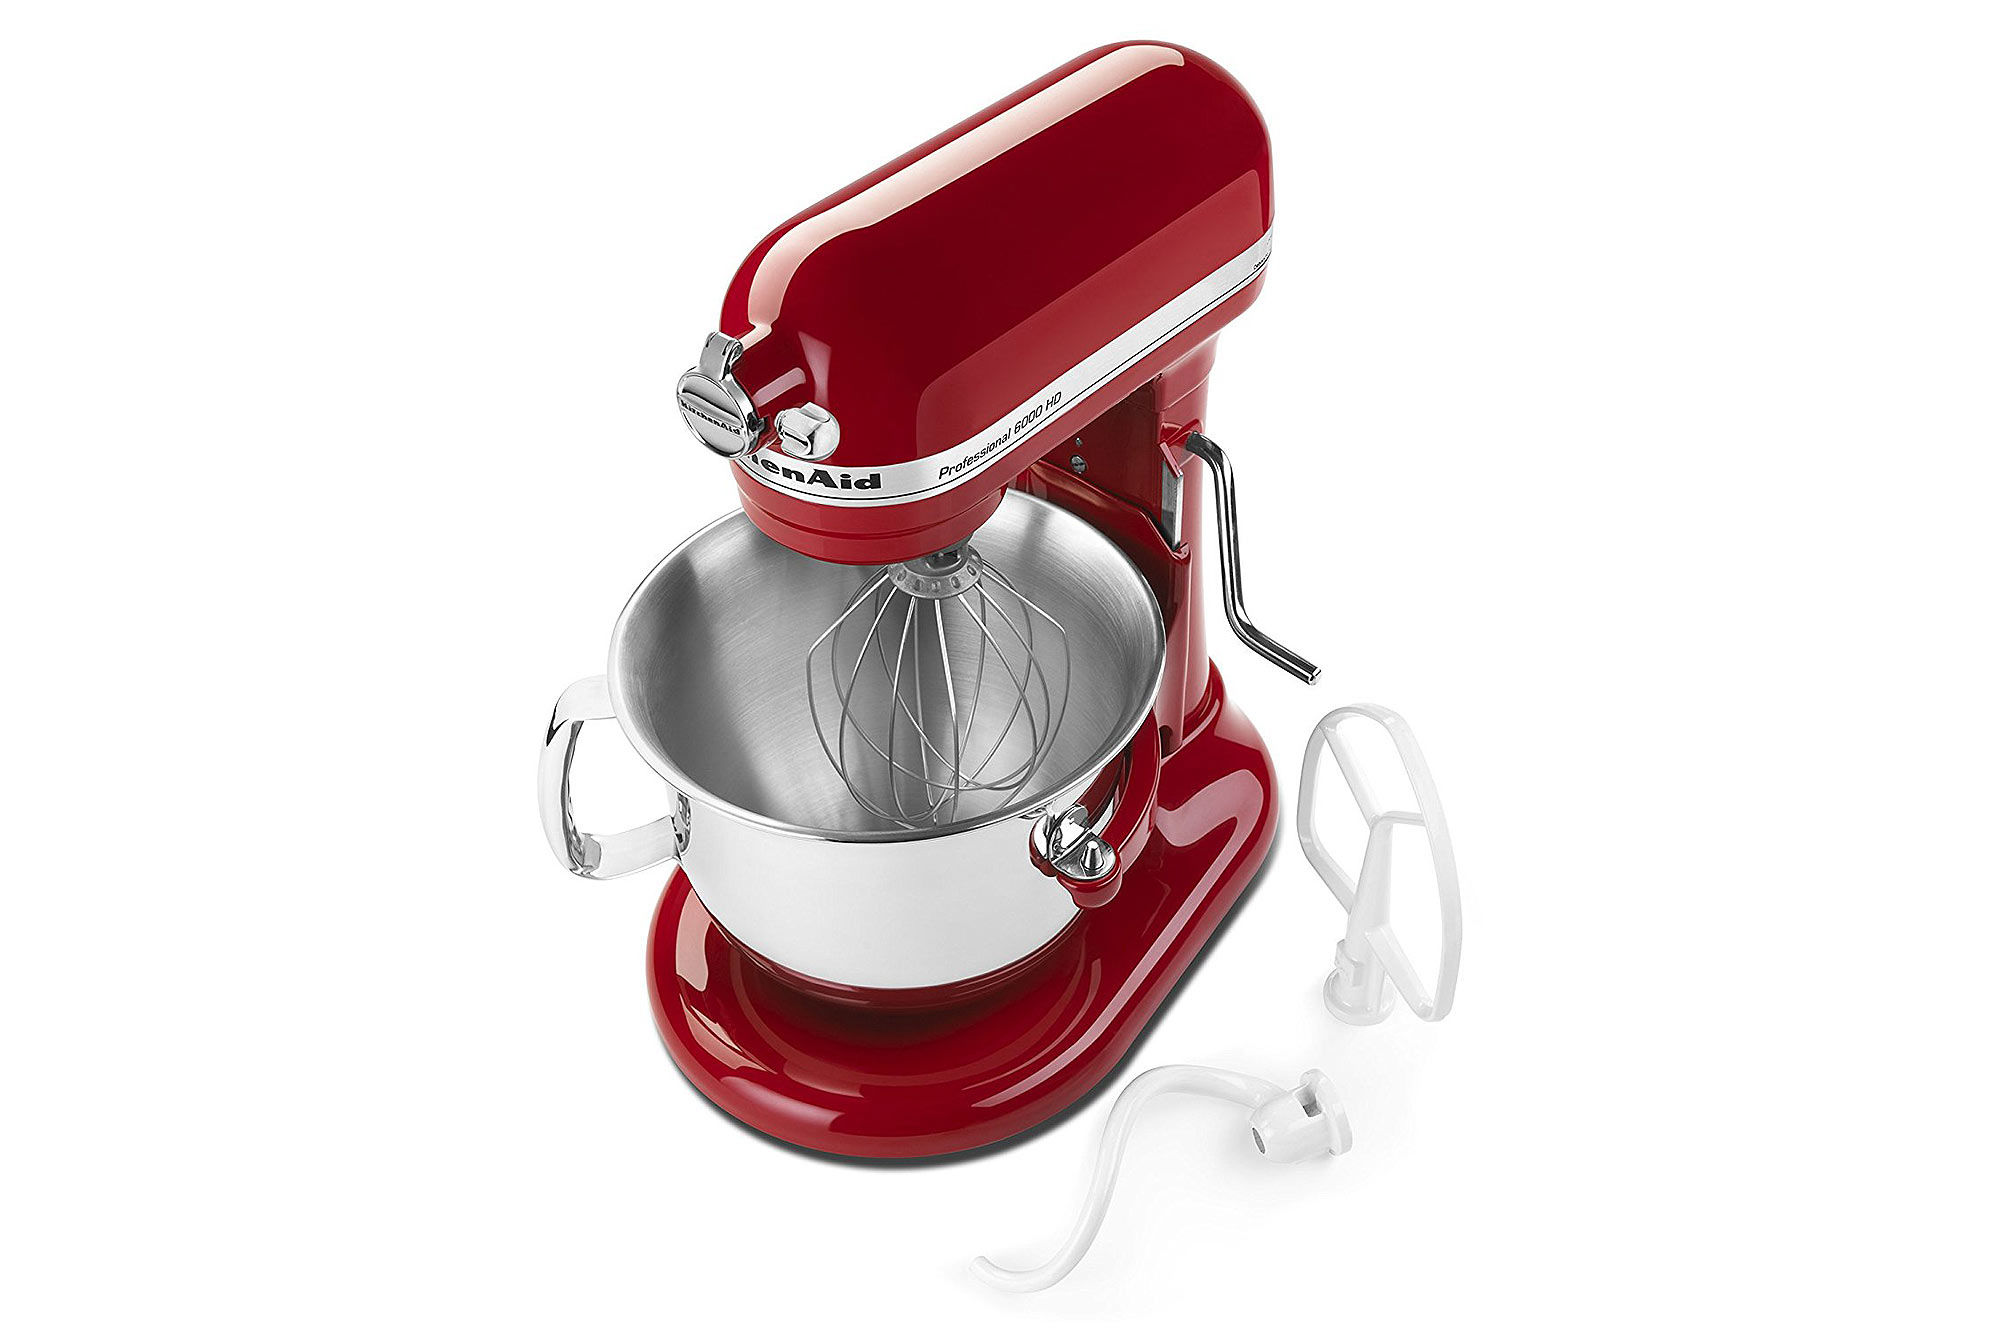 There's an Amazing KitchenAid Sale Happening Now—Get One While You Can